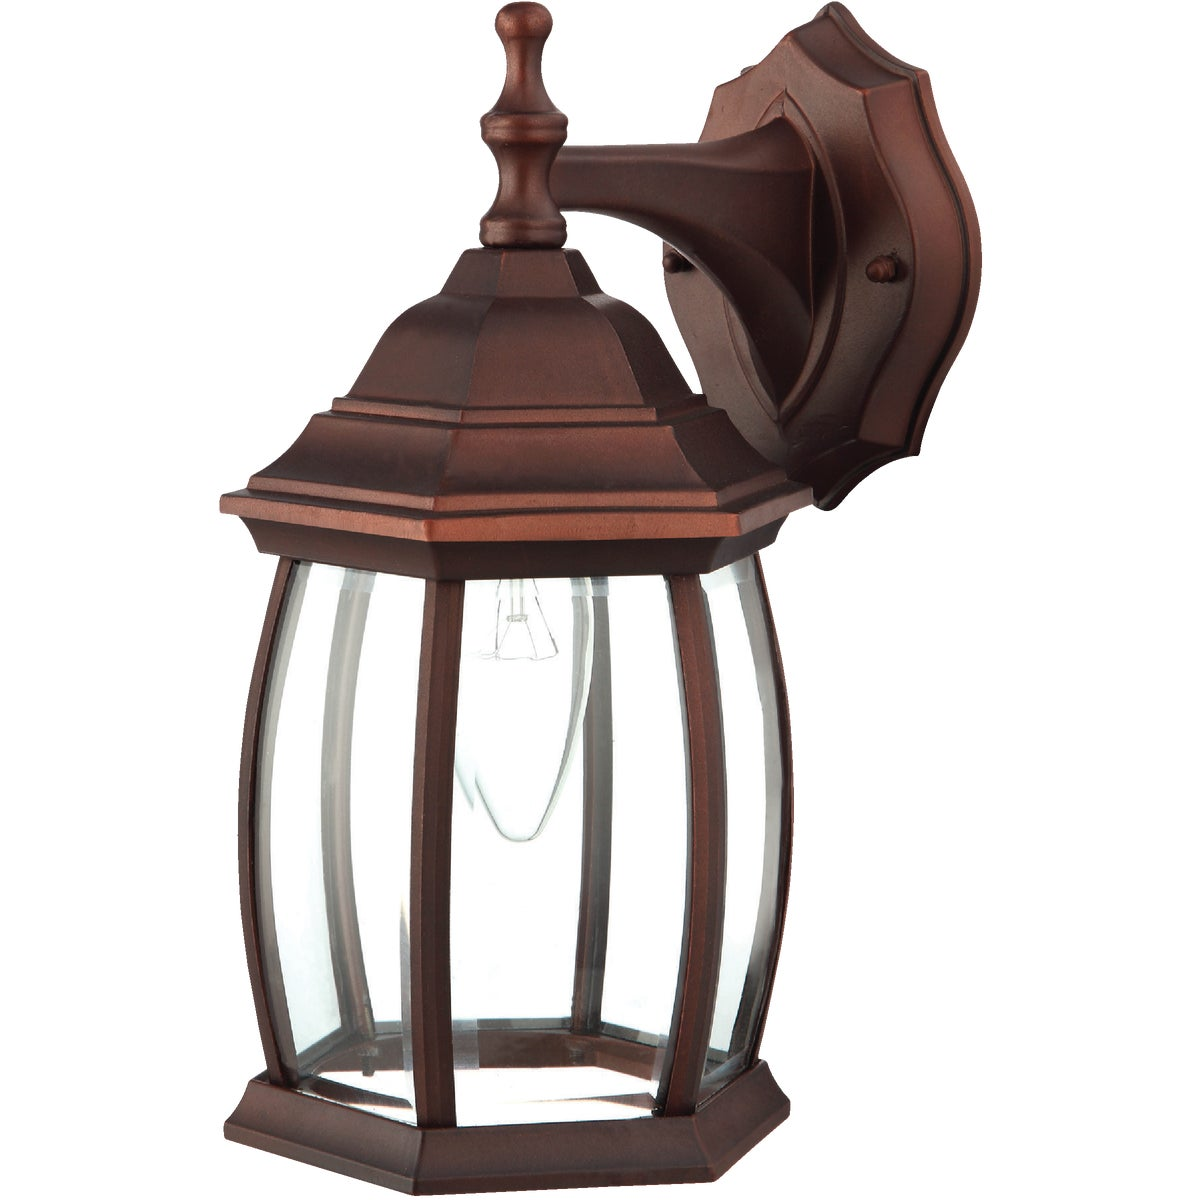 COPPER OUTDOOR FIXTURE - IOL12AC by Canarm Gs